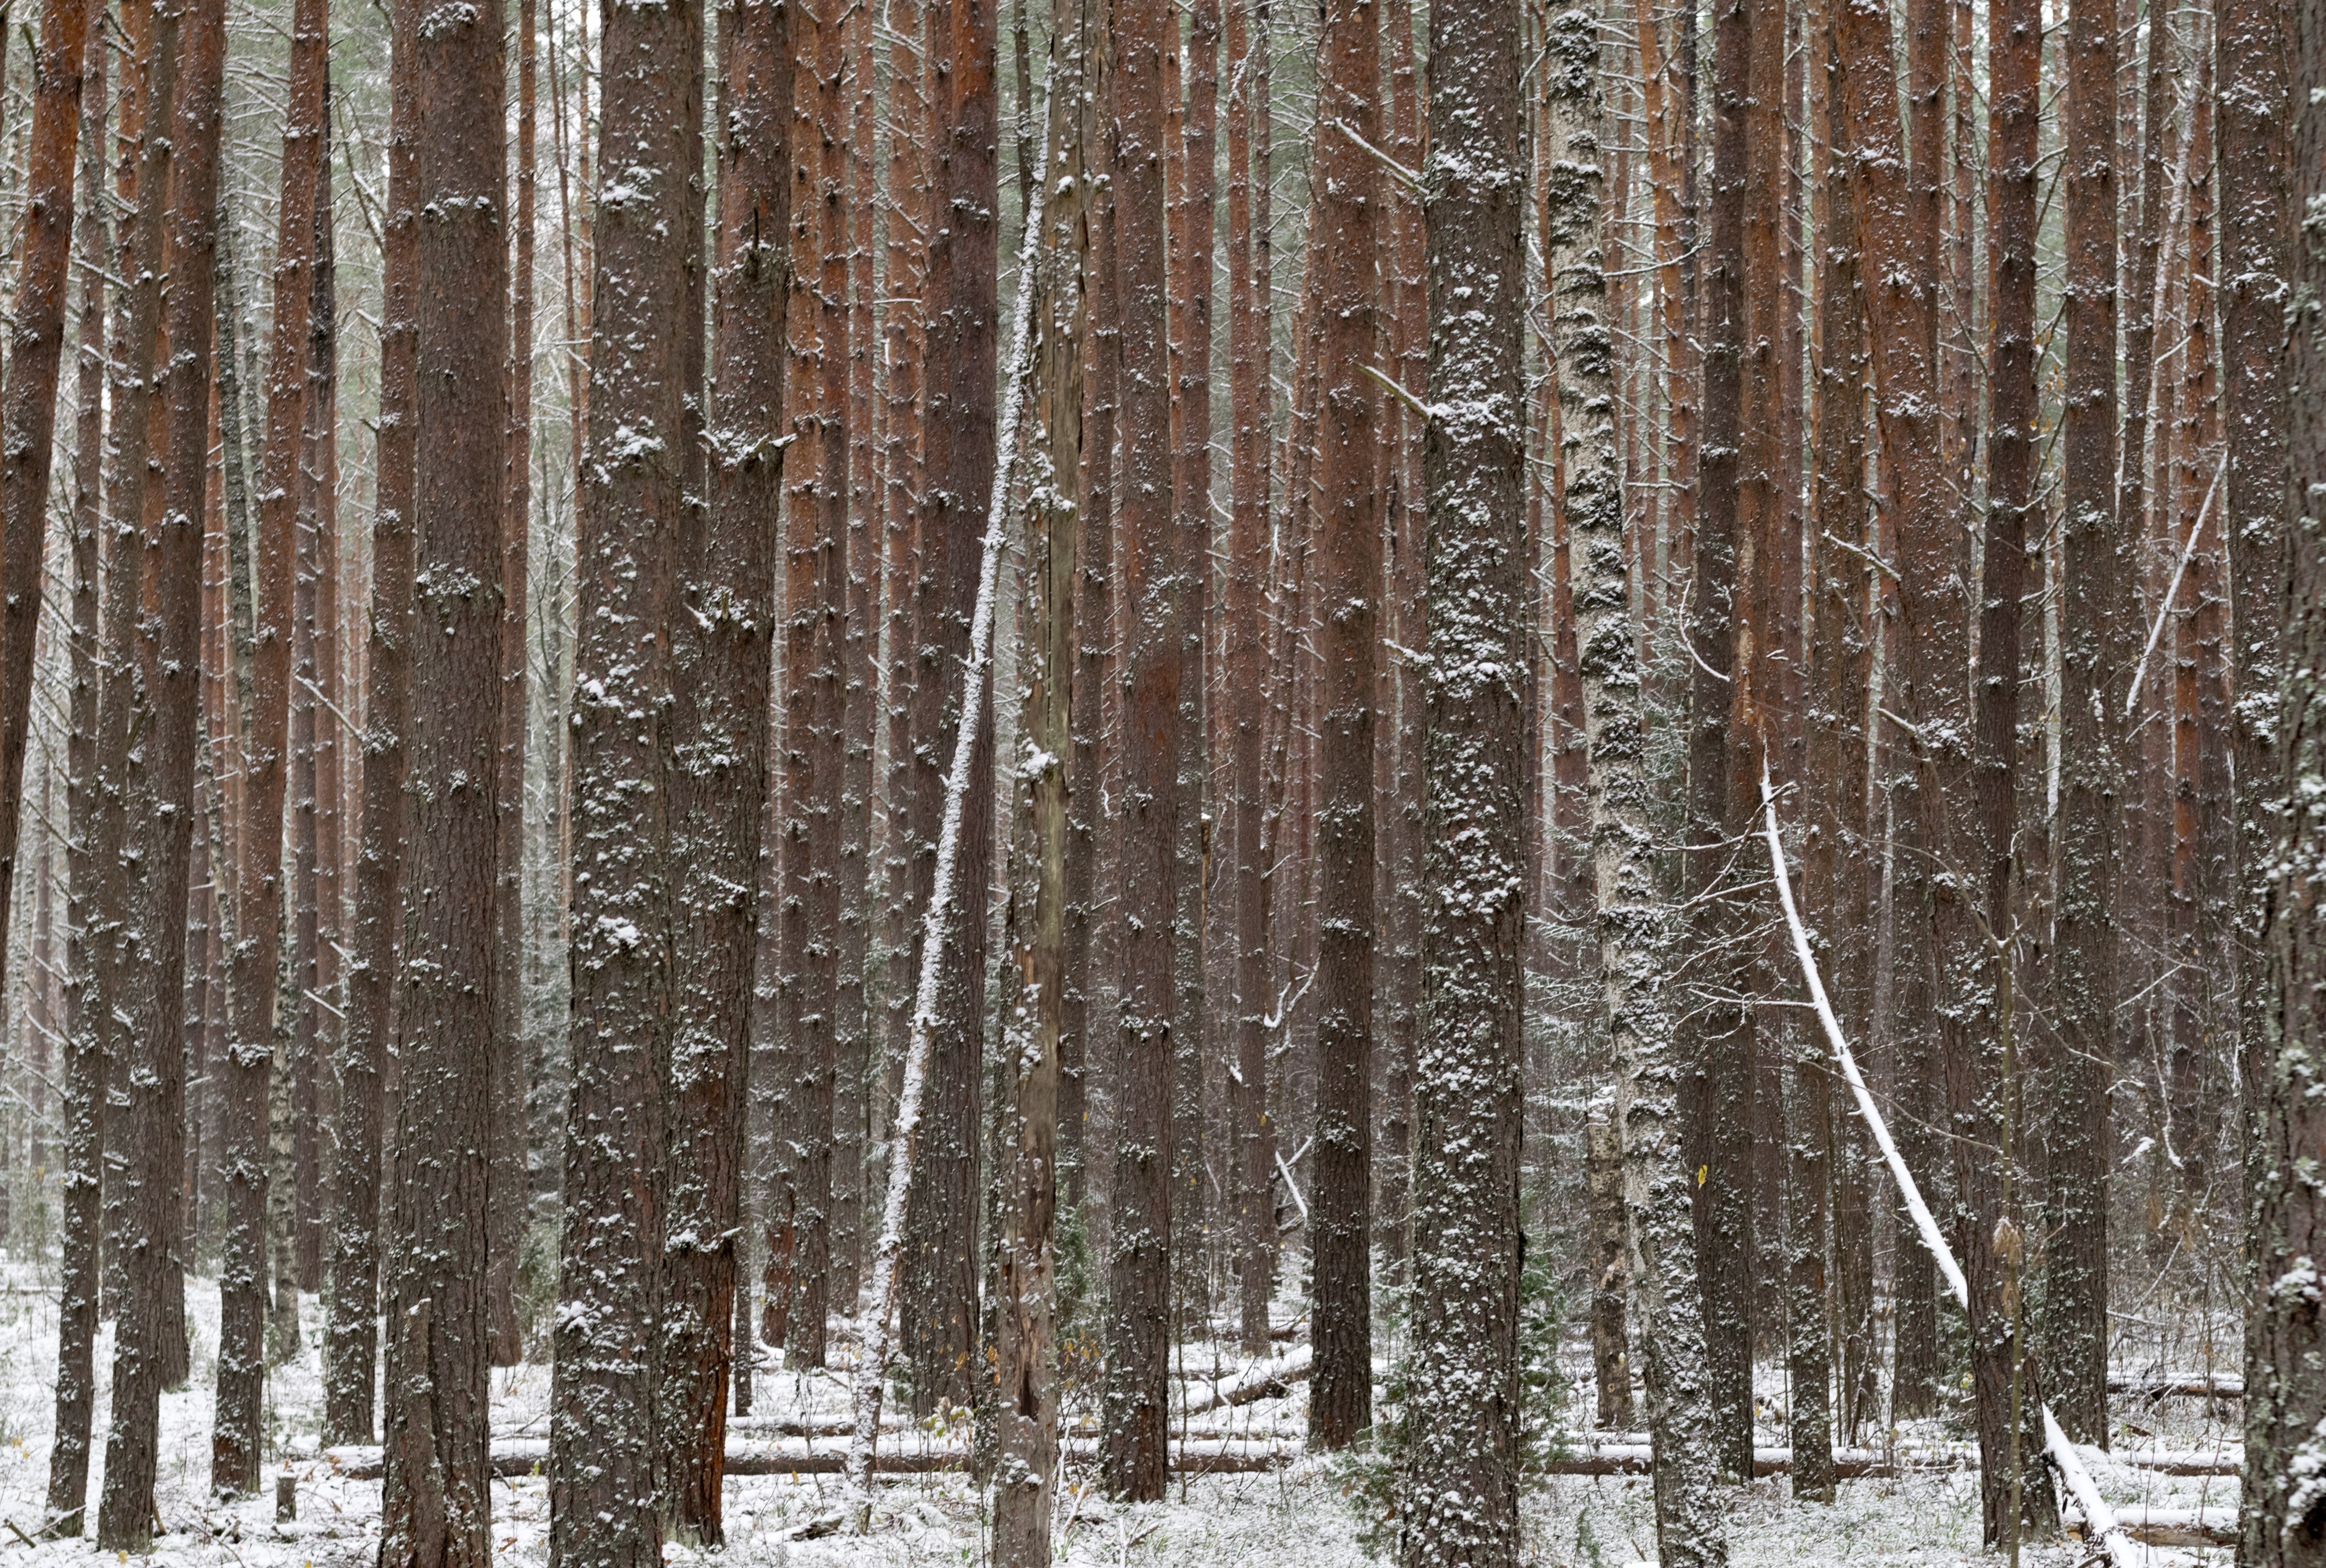 trees with snow in forest